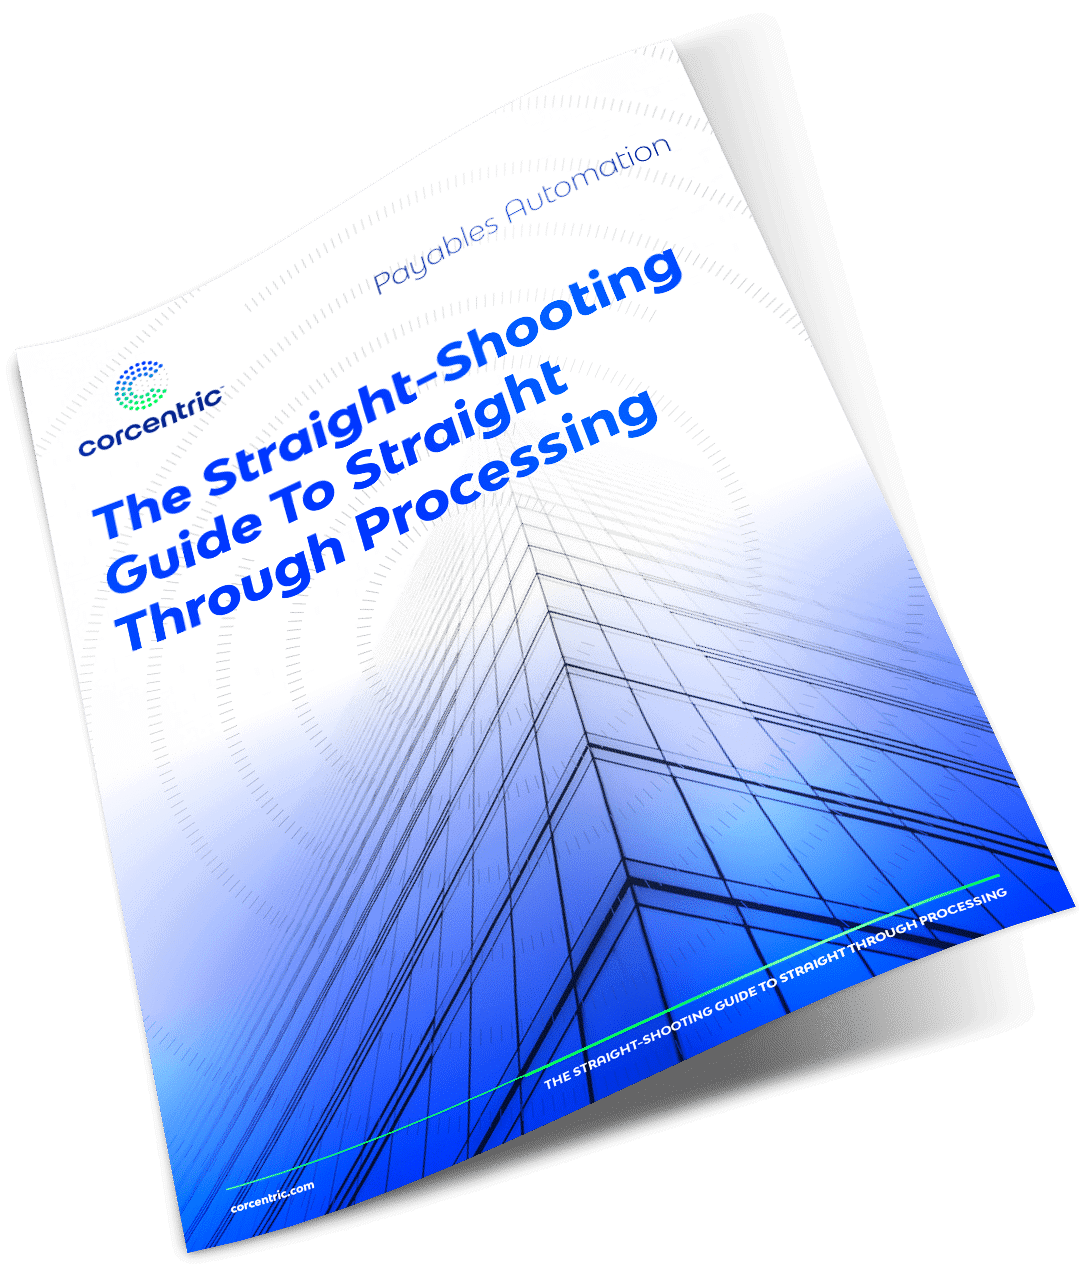 white-paper-guide-straight-shooting-guide-straight-processing-asset